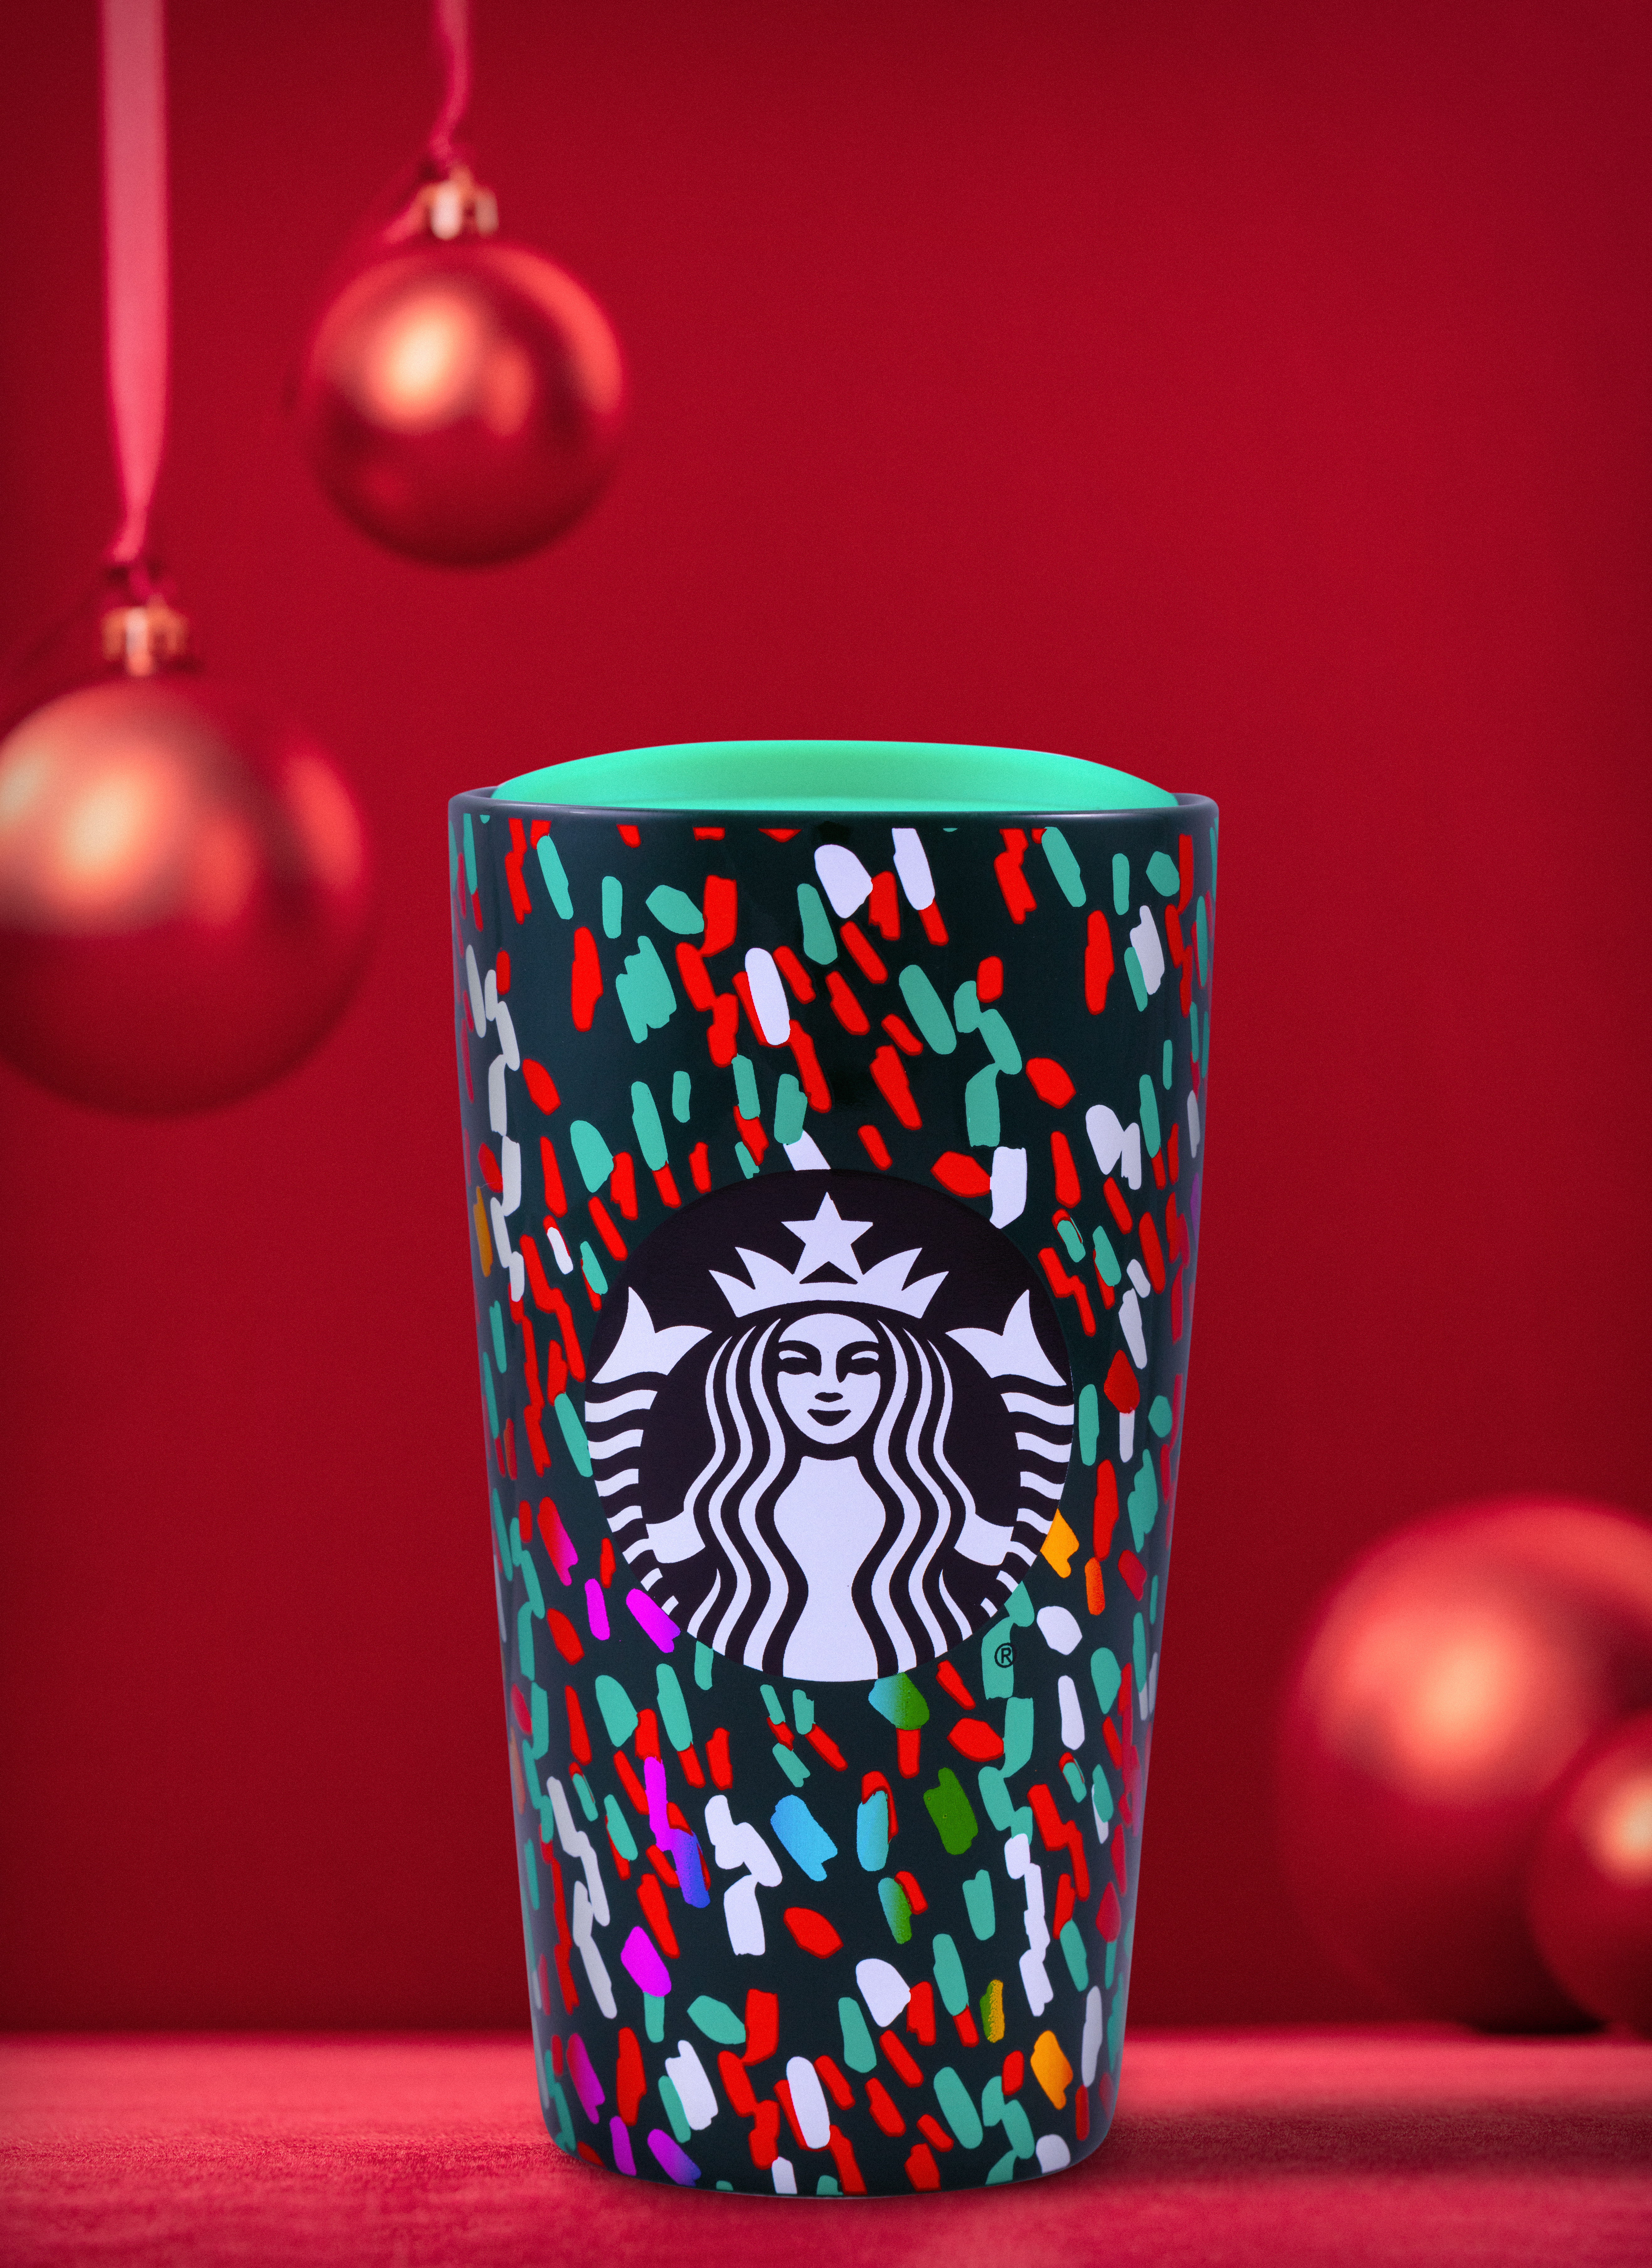 Starbucks shares a sneak peek of covetable gifts for 2019 holiday